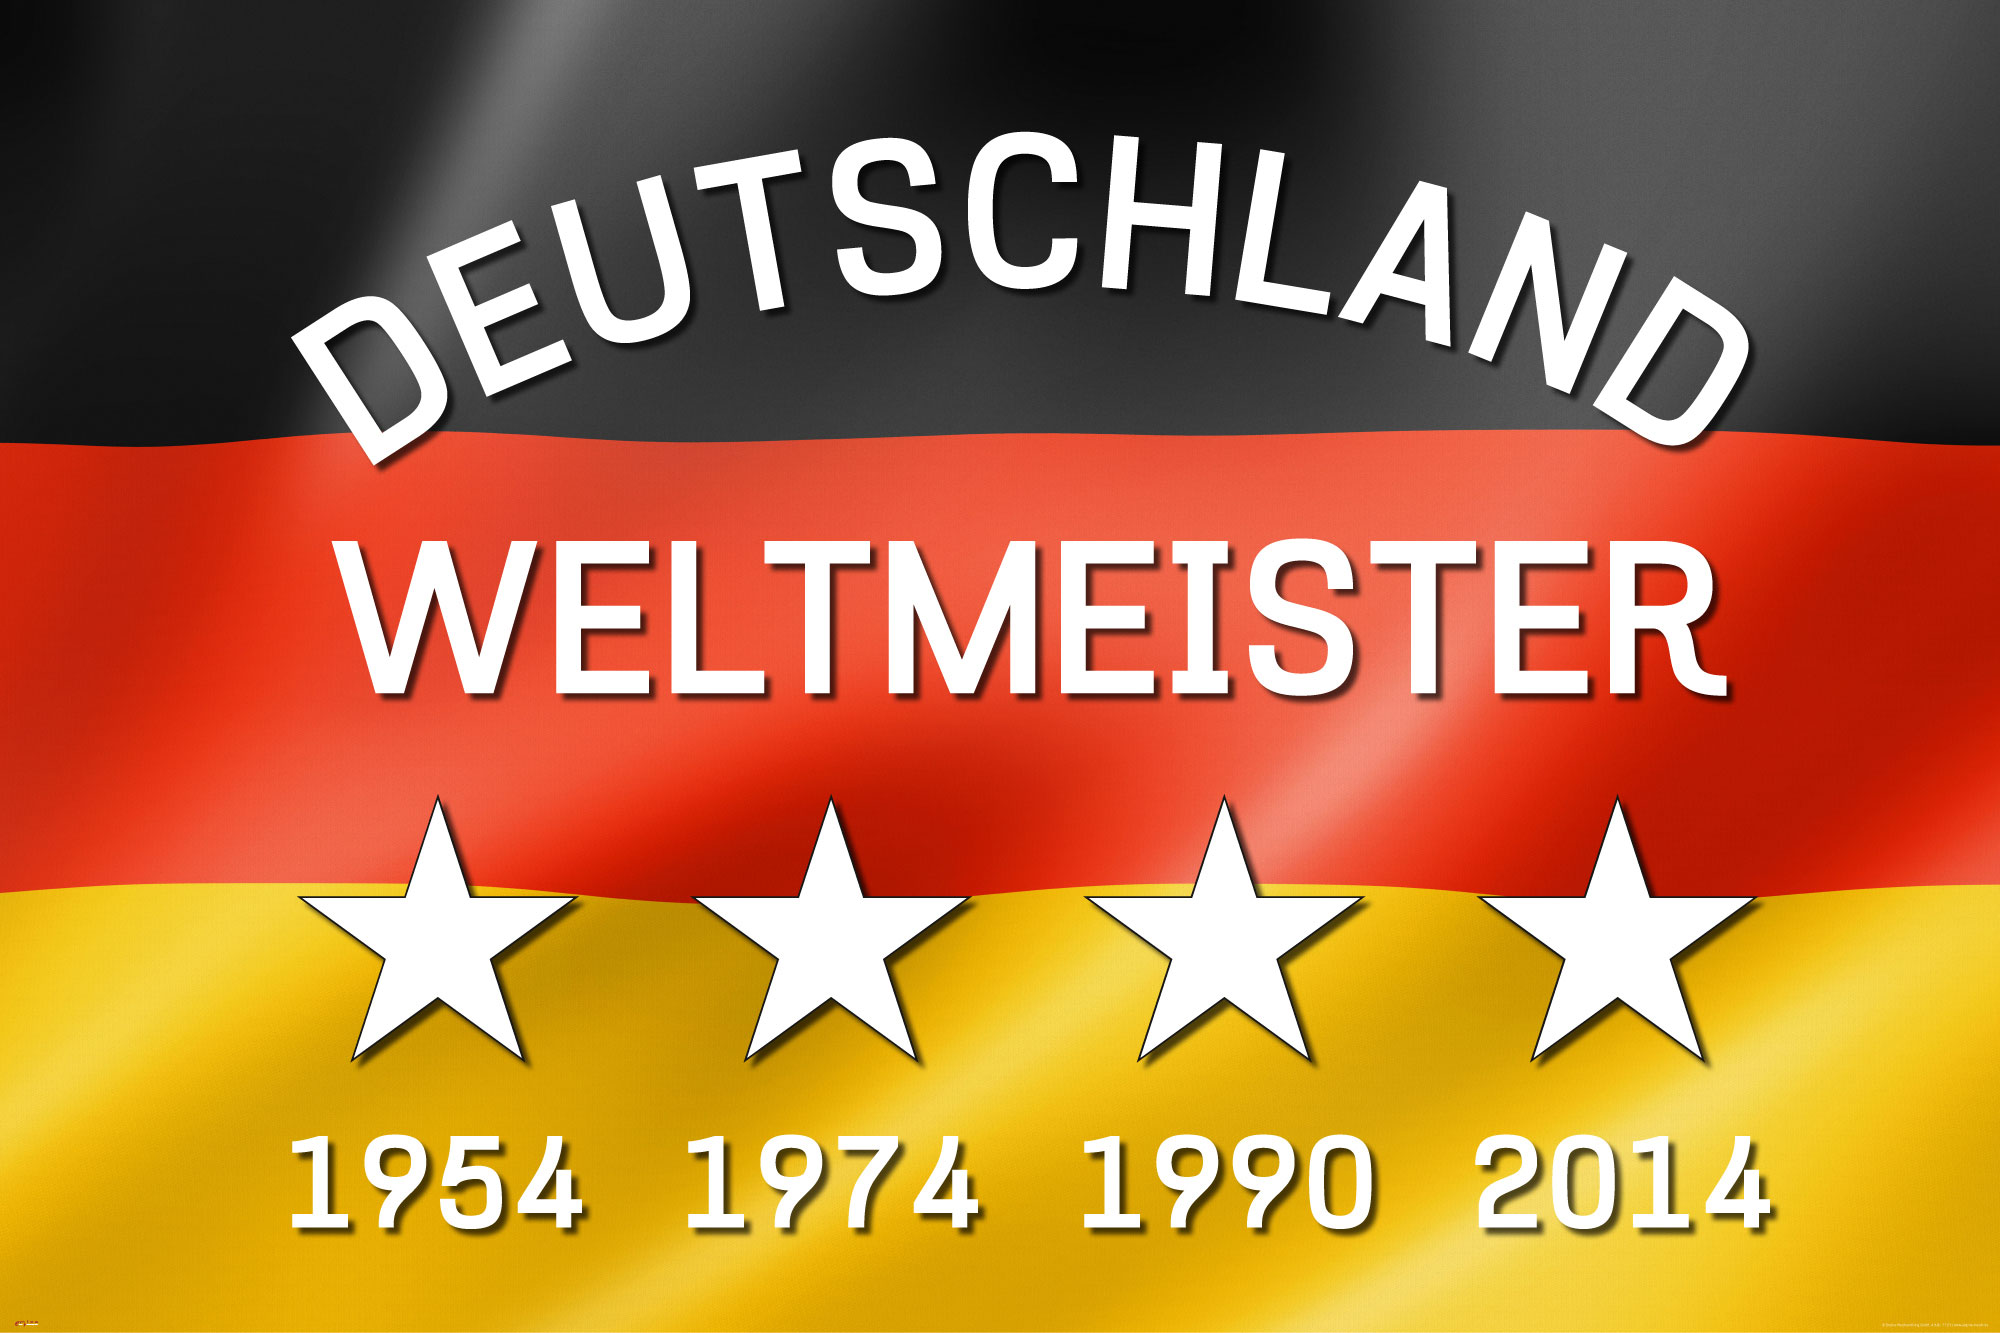 fu ball deutschland weltmeister fahne flagge poster druck gr e 91 5x61 cm ebay. Black Bedroom Furniture Sets. Home Design Ideas